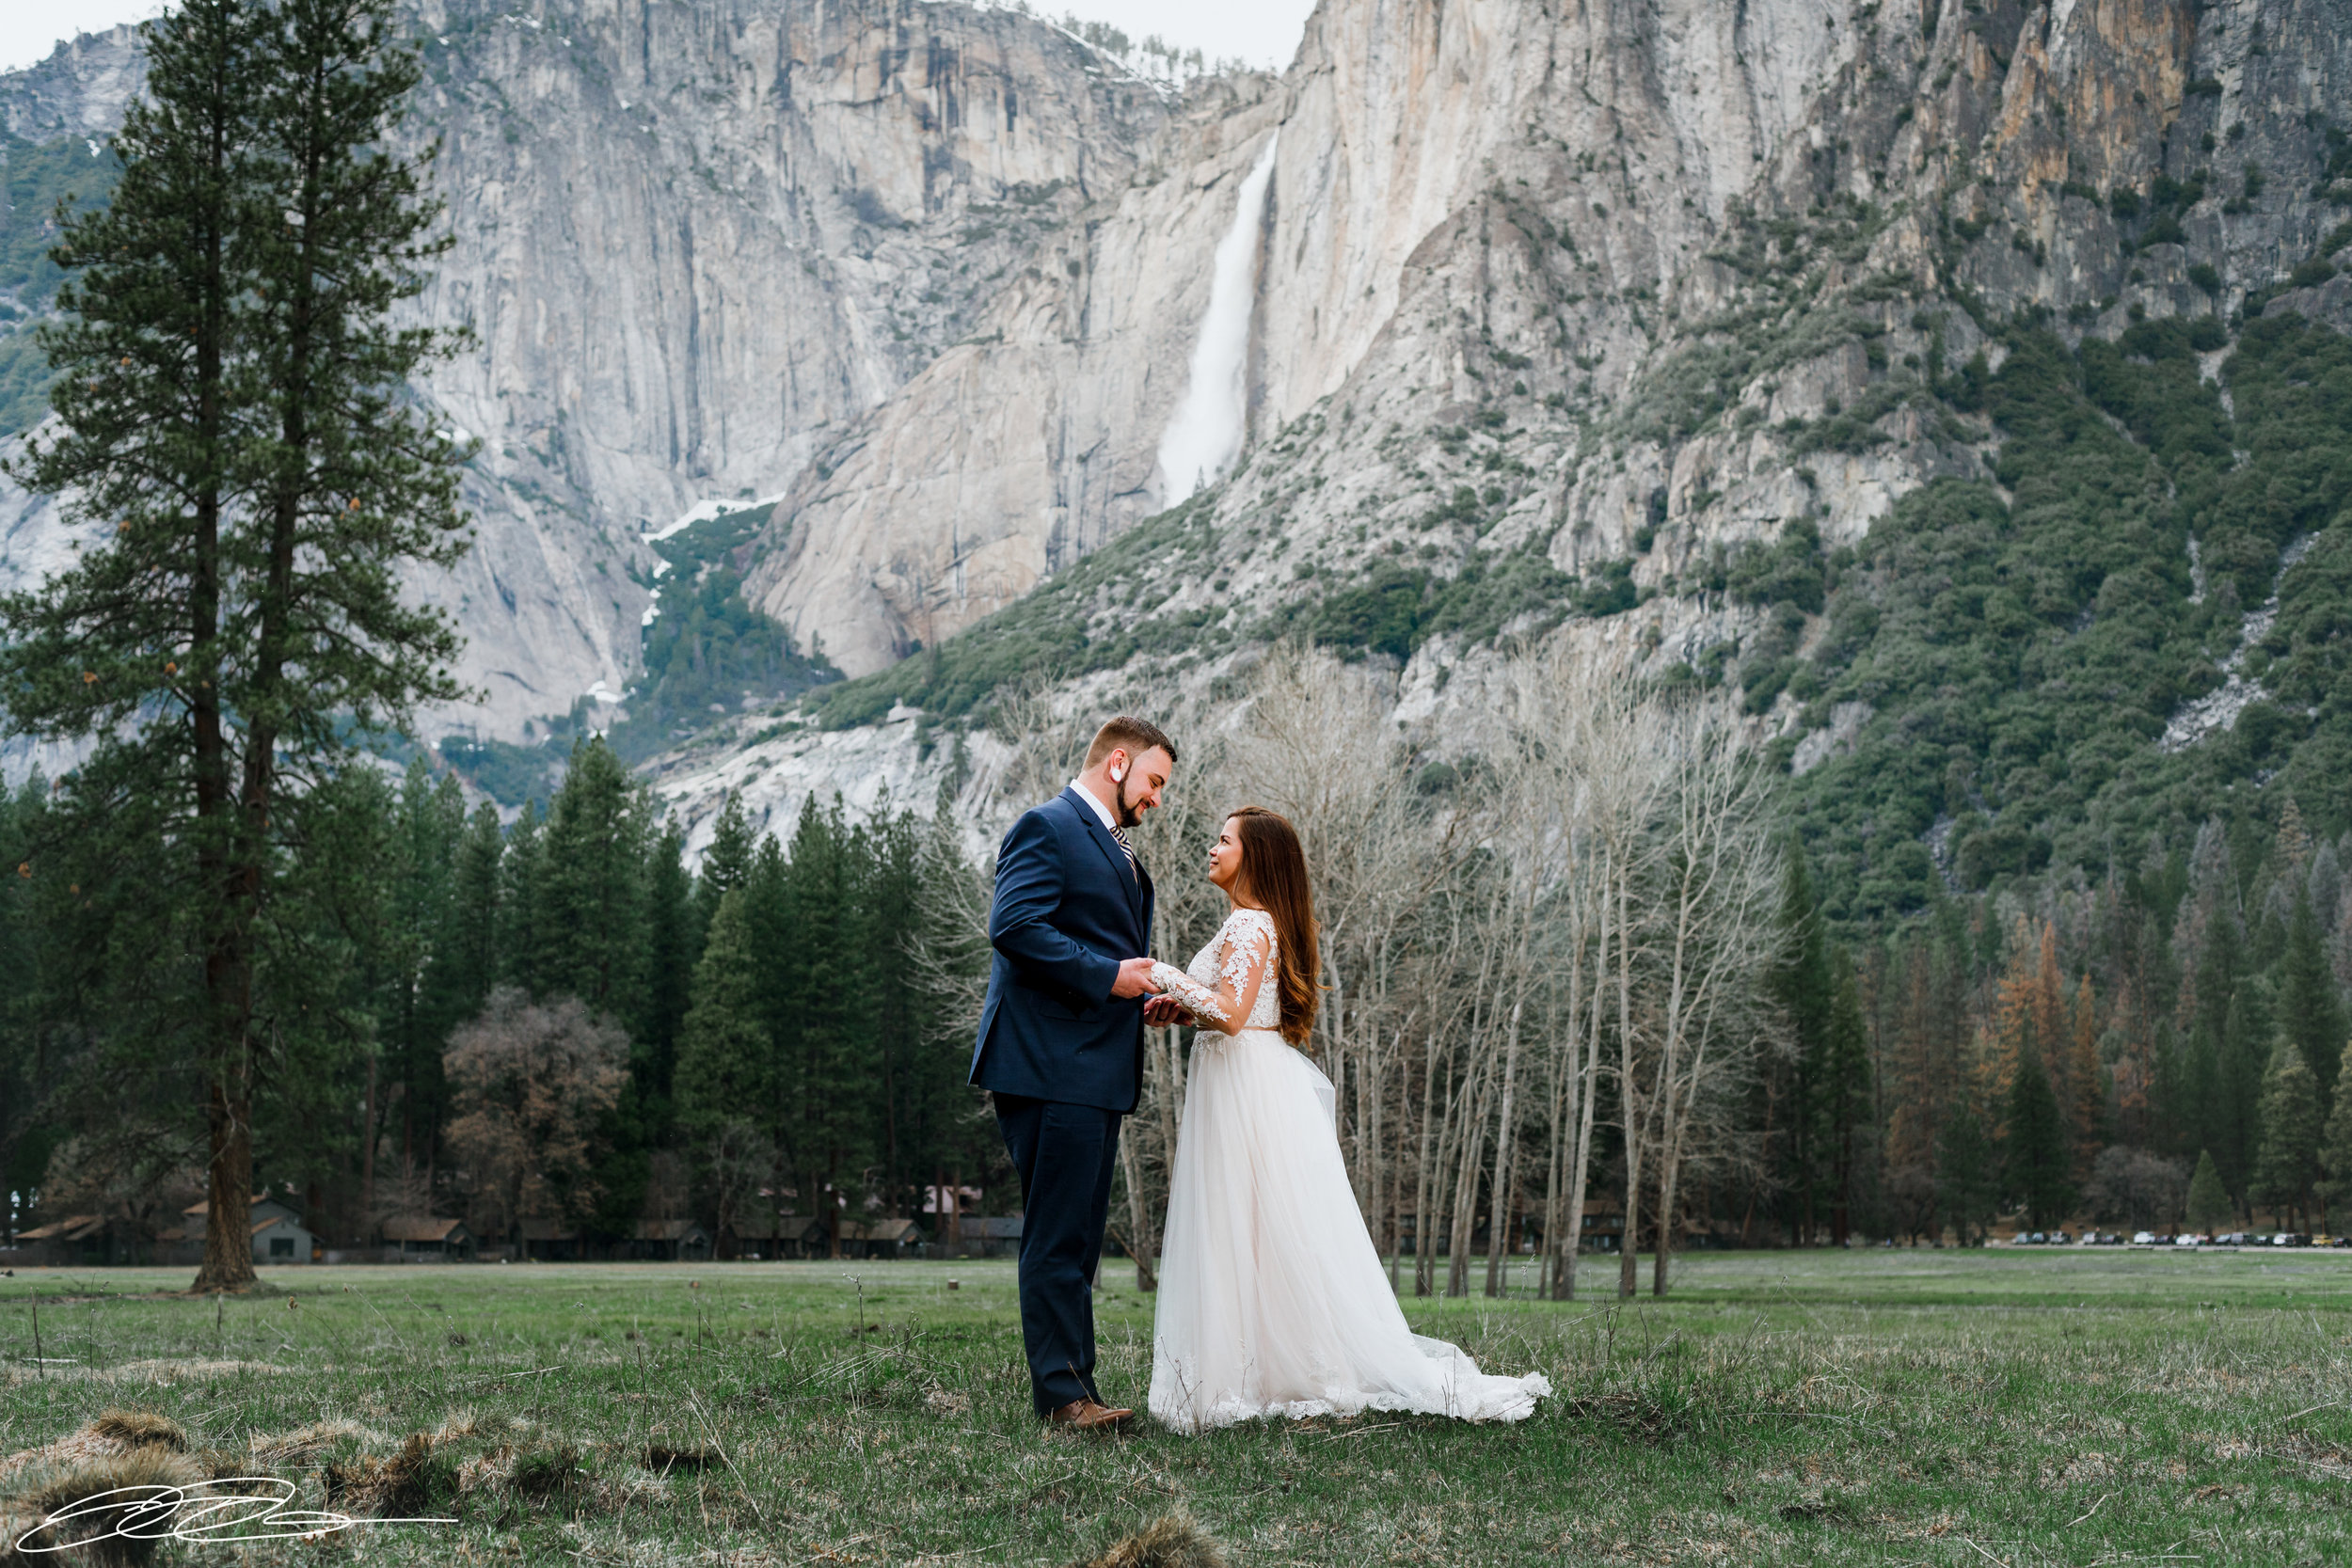 yosemite-wedding-1 (9 of 16).JPG